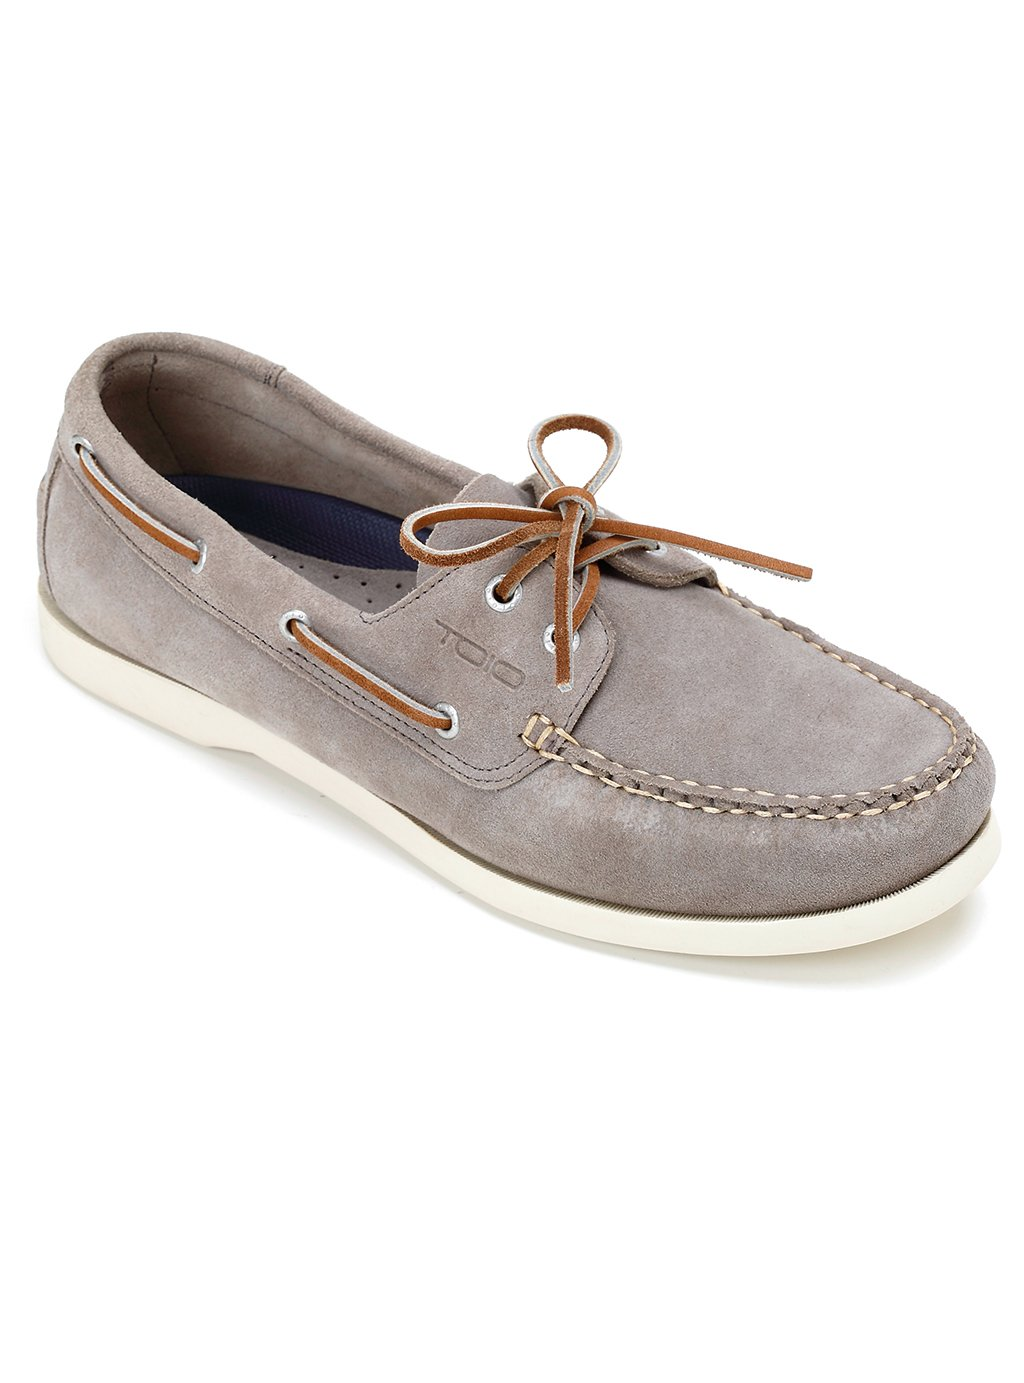 TOIO HARBOUR SHOE MOCASSIN - Handcrafted 100% leather (suede) rubber sole with anti-slip tread…